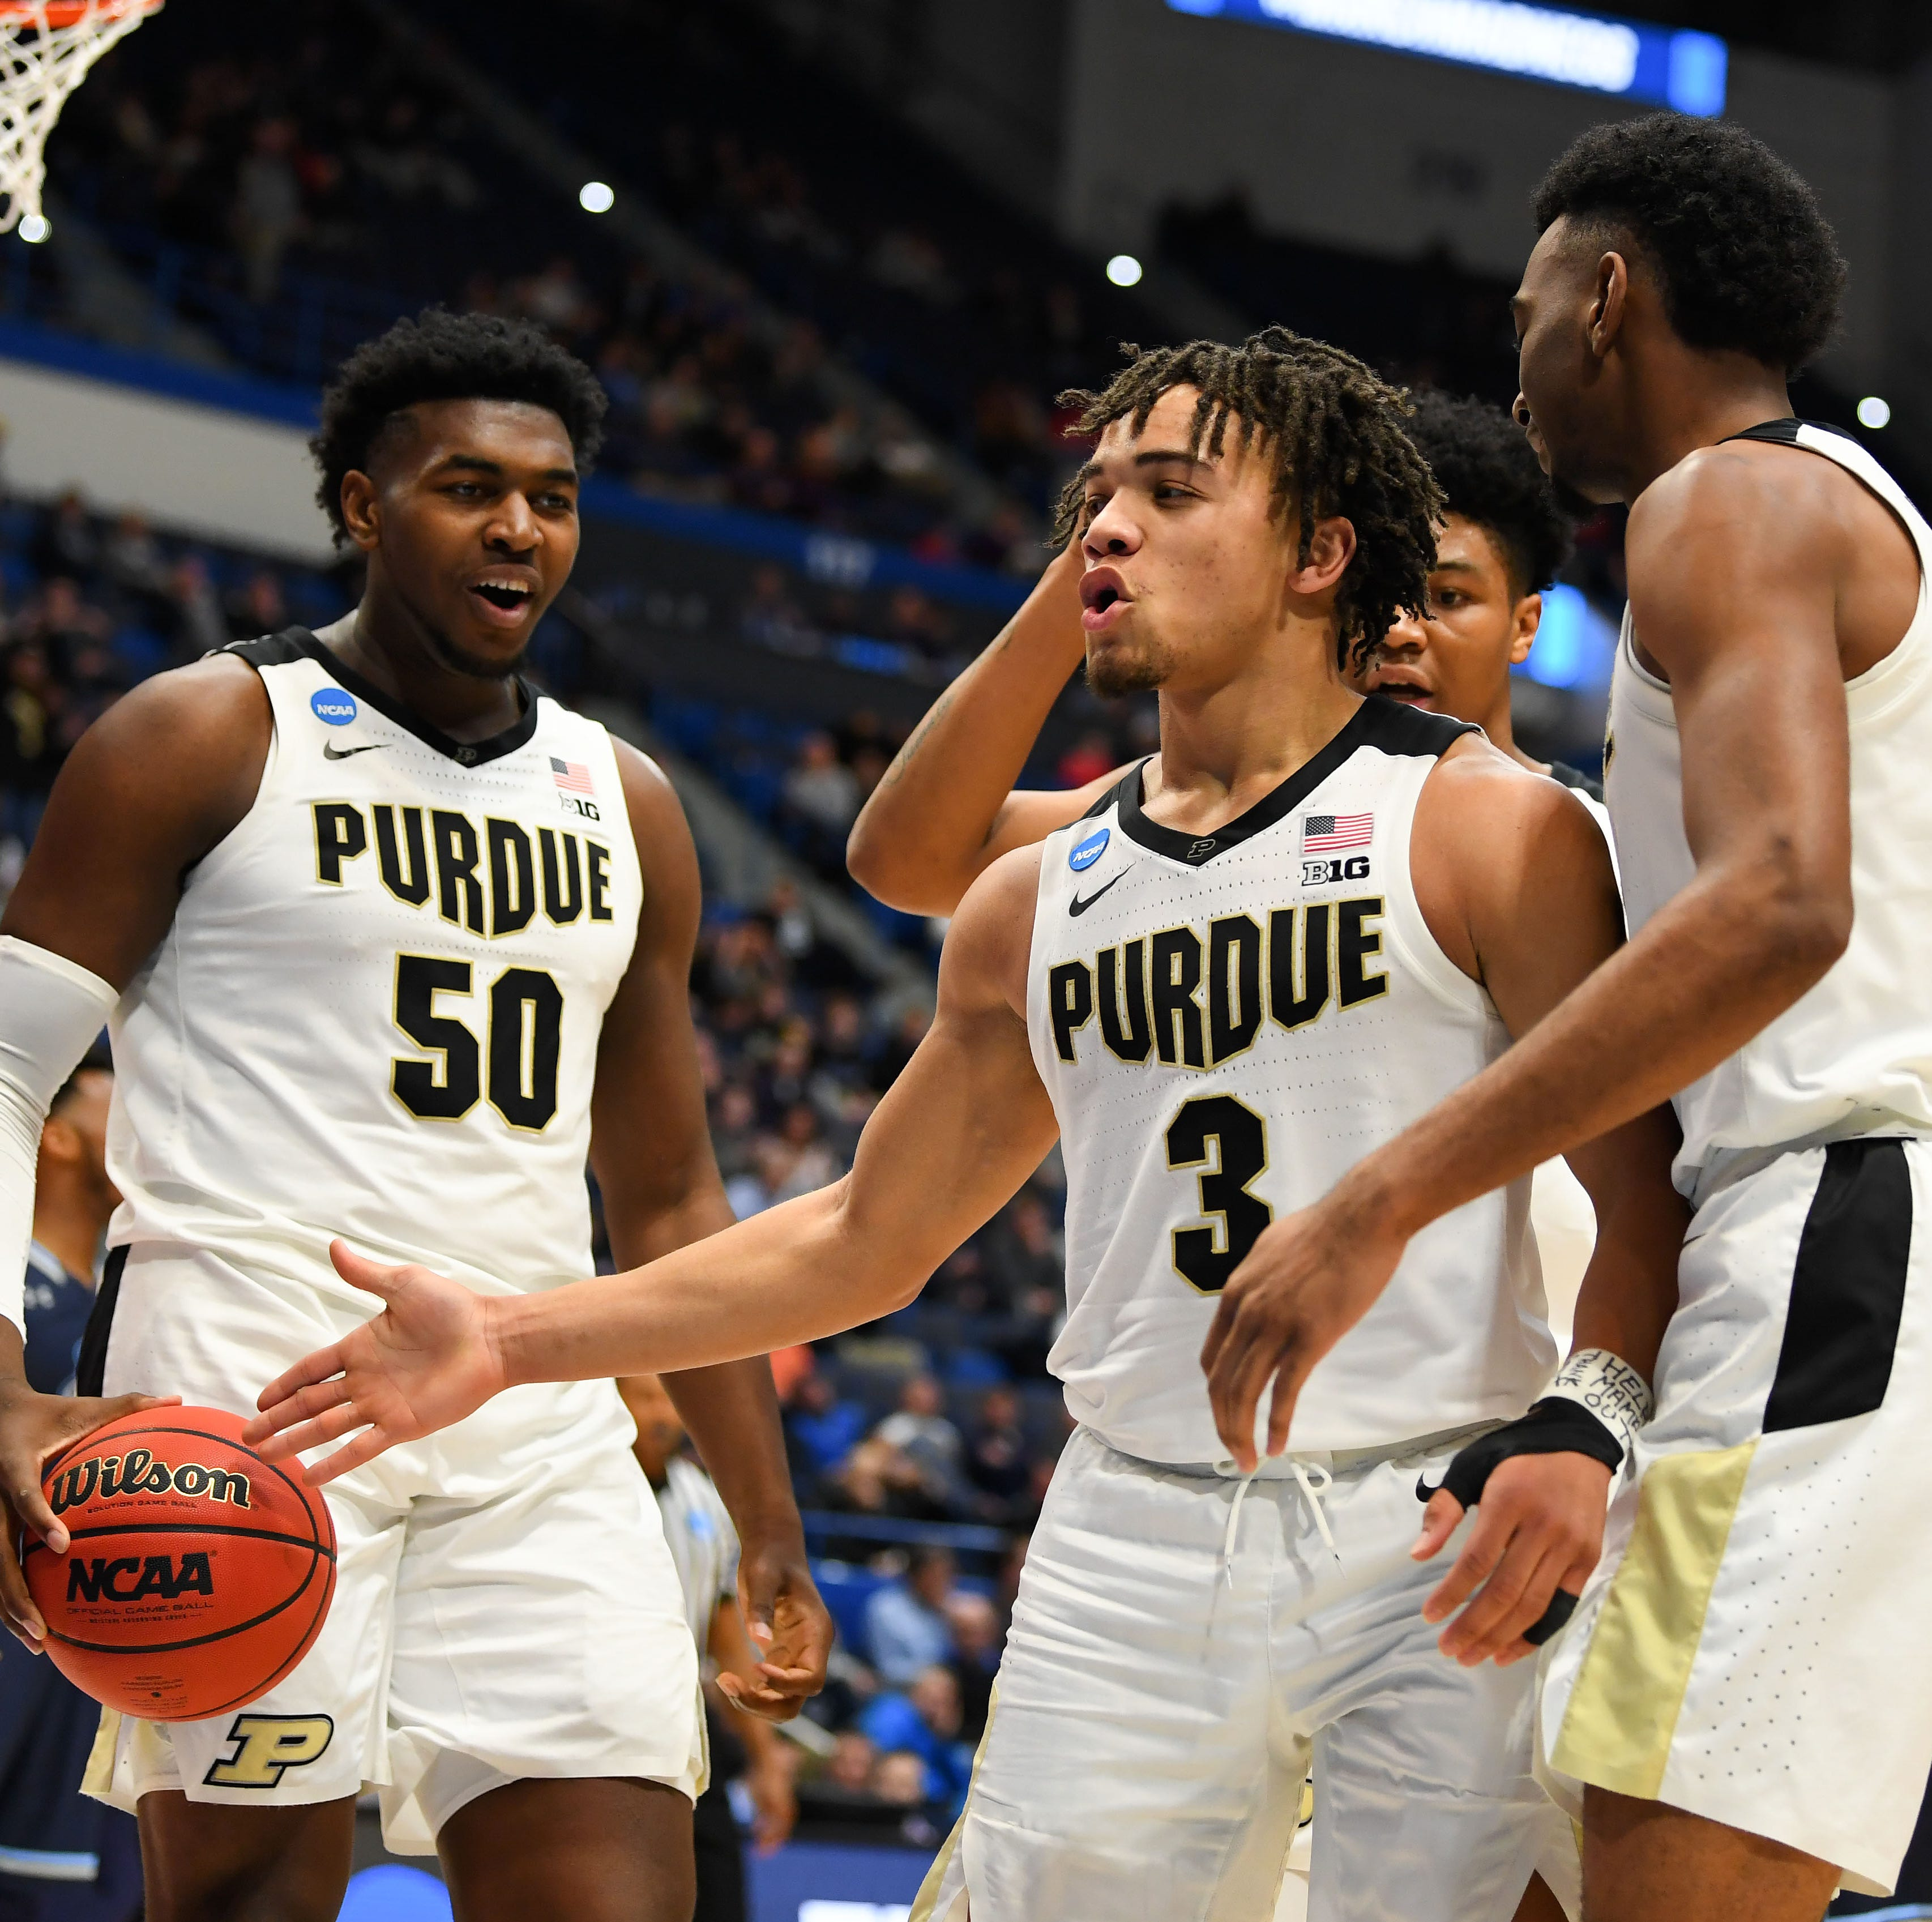 Doyel: Purdue's secret weapon was someone who never left the bench